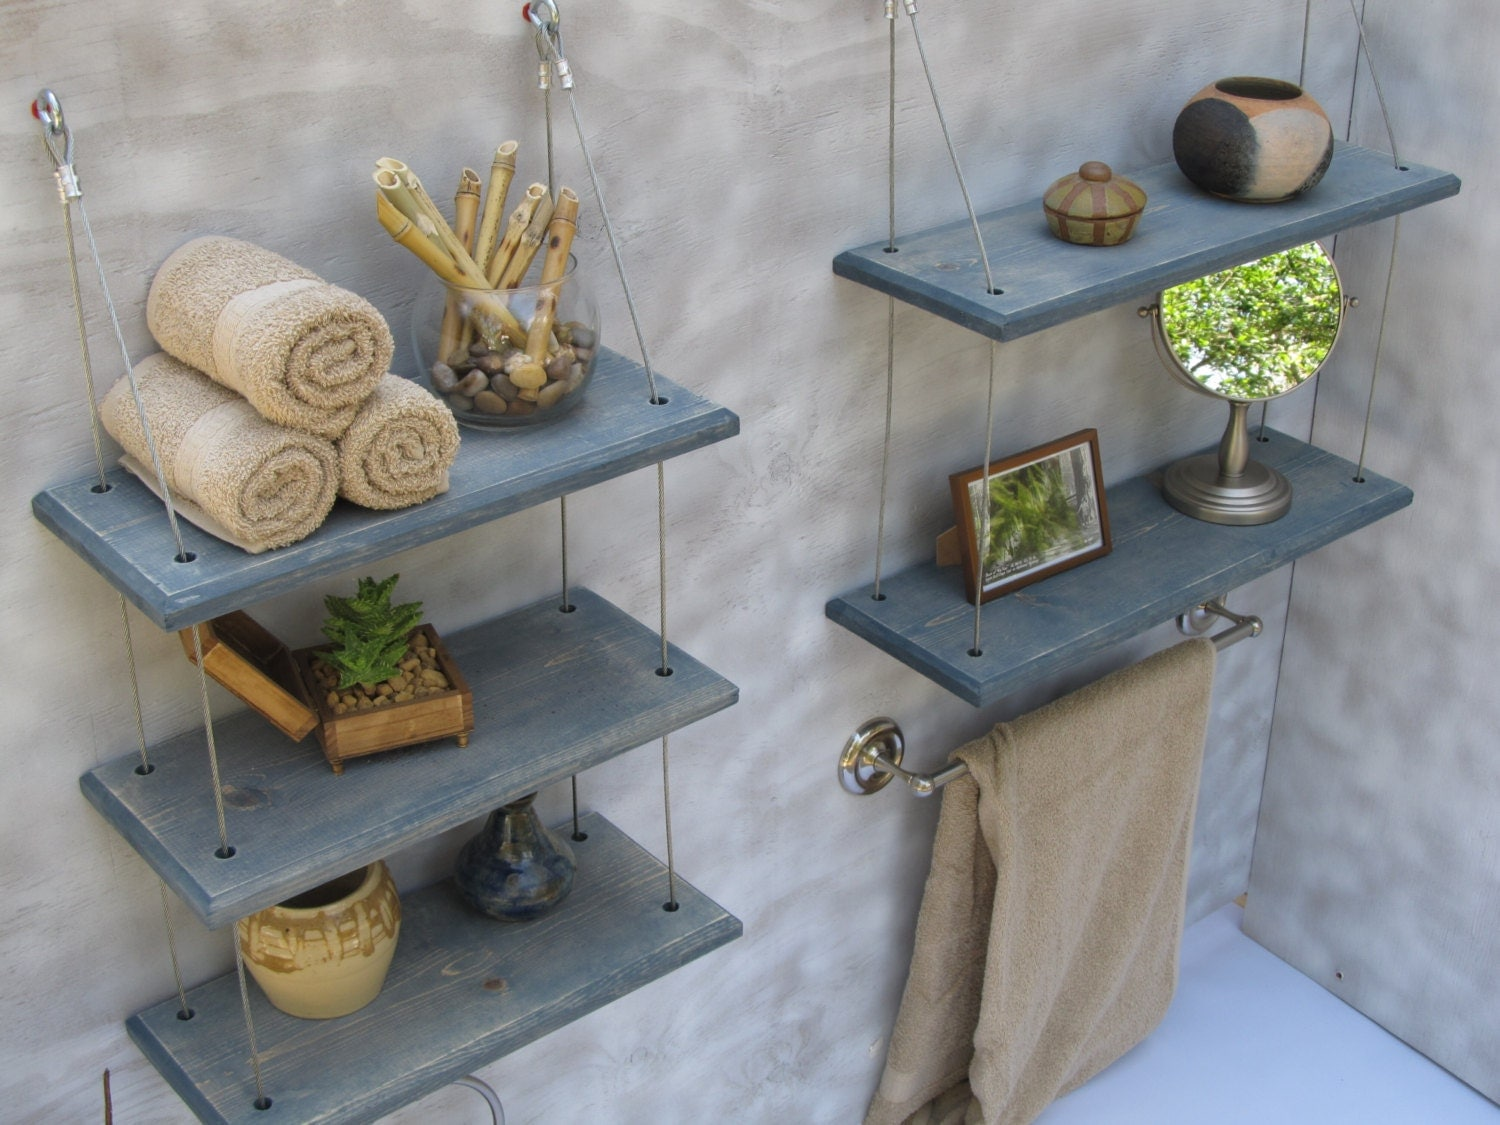 Bathroom shelves floating shelves industrial shelves - Floating shelf ideas for bathroom ...